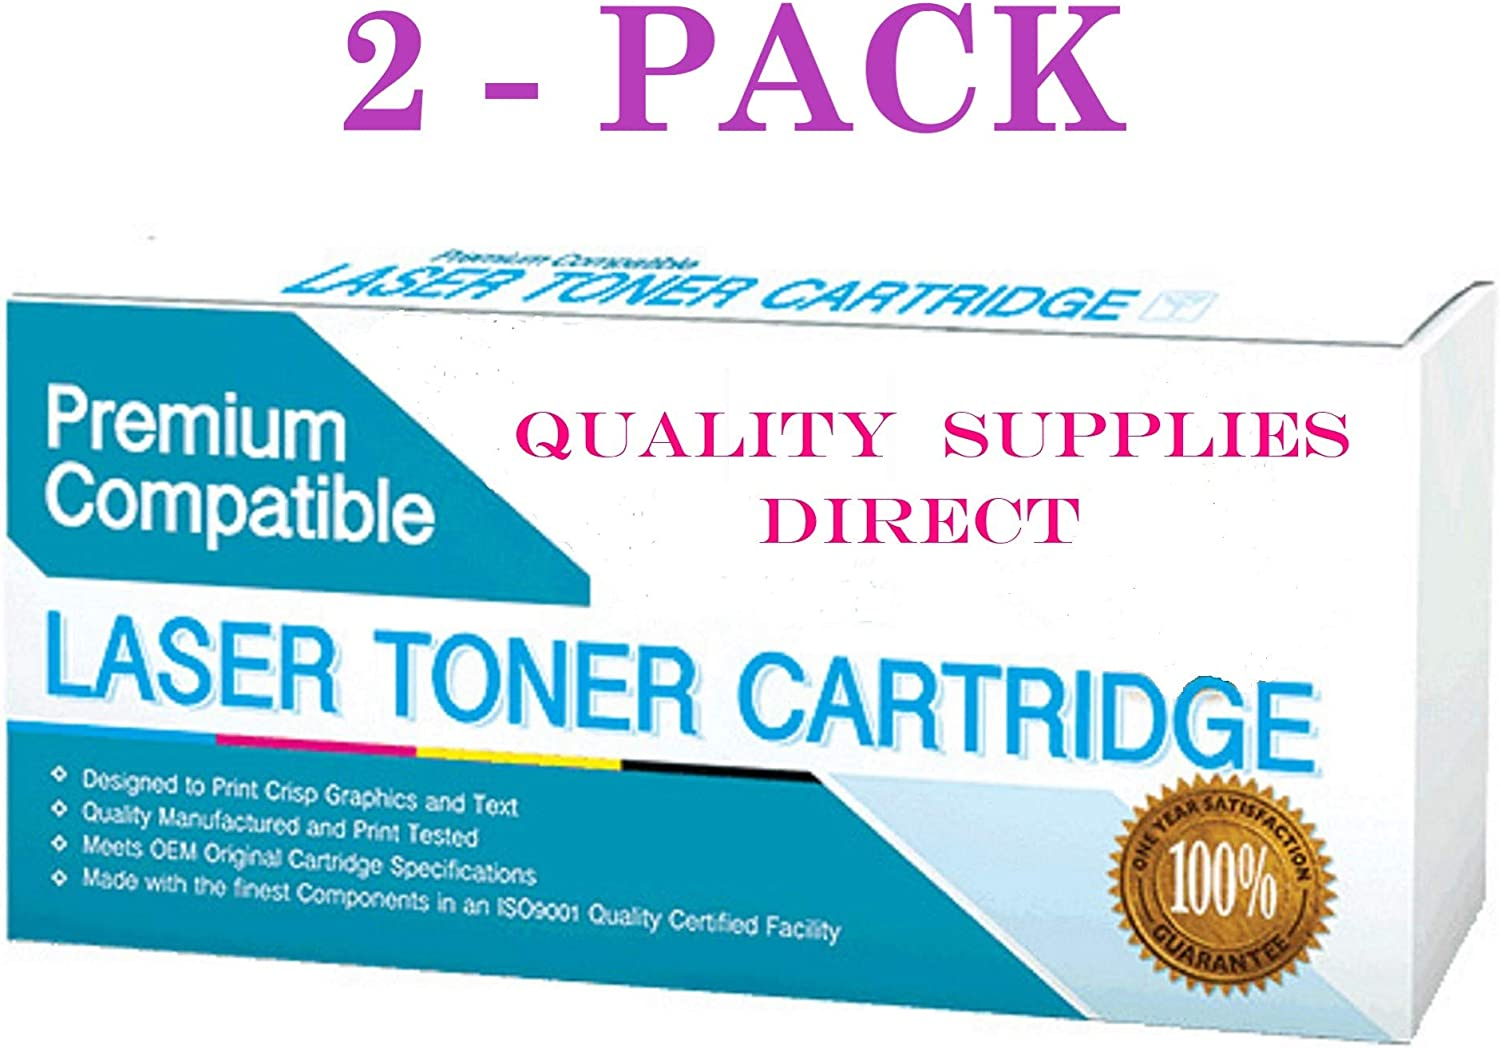 QSD Remanufactured Inkjet Replacement for HP C6615A, C6615D, 15, Works with: Deskjet 800's, 900's; Color Copier 310; Fax 1230; OfficeJet 5000's, V40; PSC 500, 750, 950 (Black)(Free 1 to 2 Day(2-Pack)